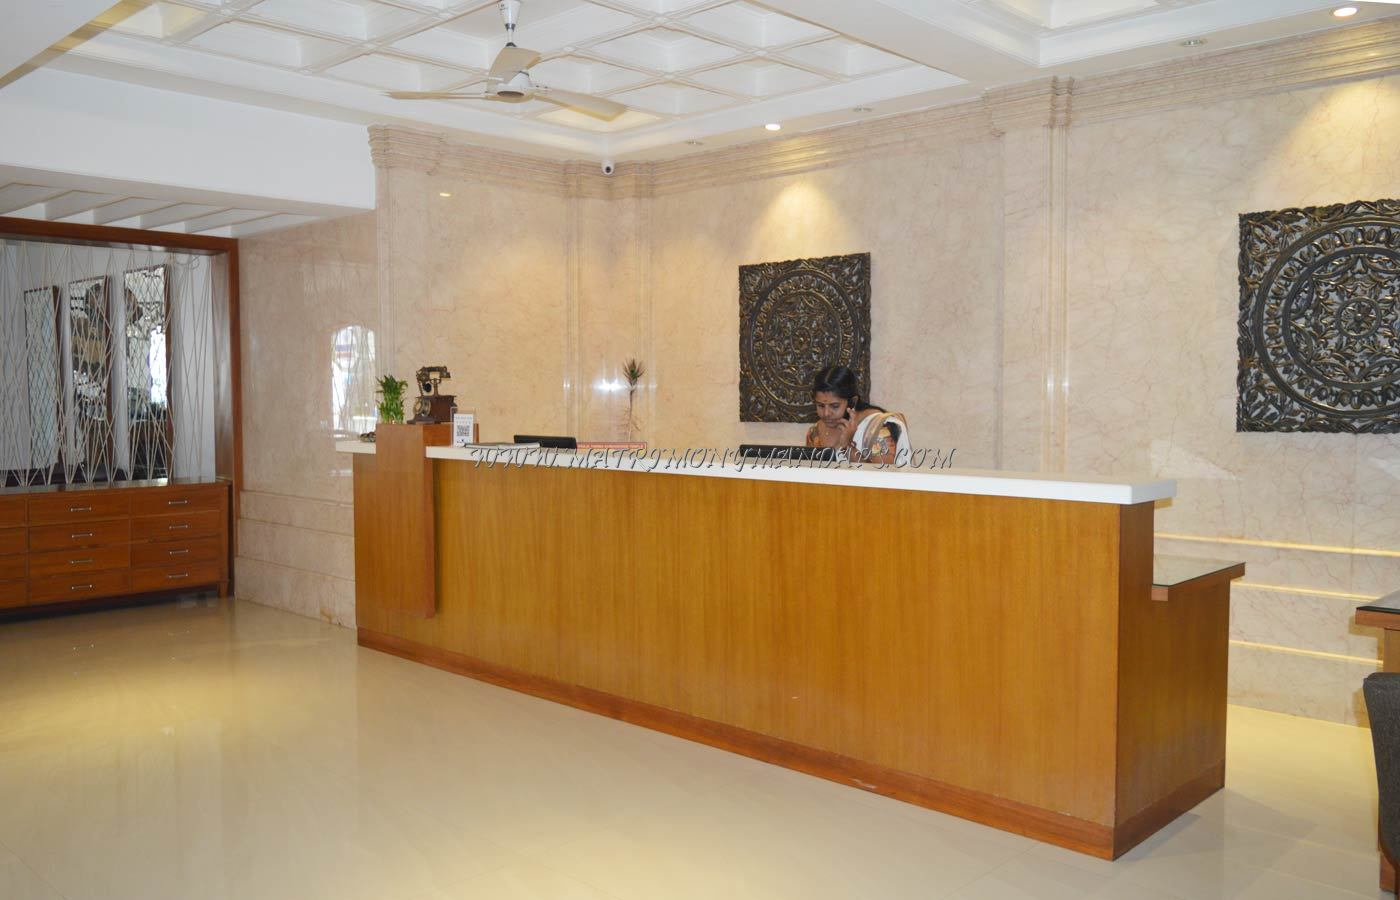 Find the availability of the Bhasuri Inn - Pananghai C (A/C) in East Nada, Guruvayoor and avail special offers